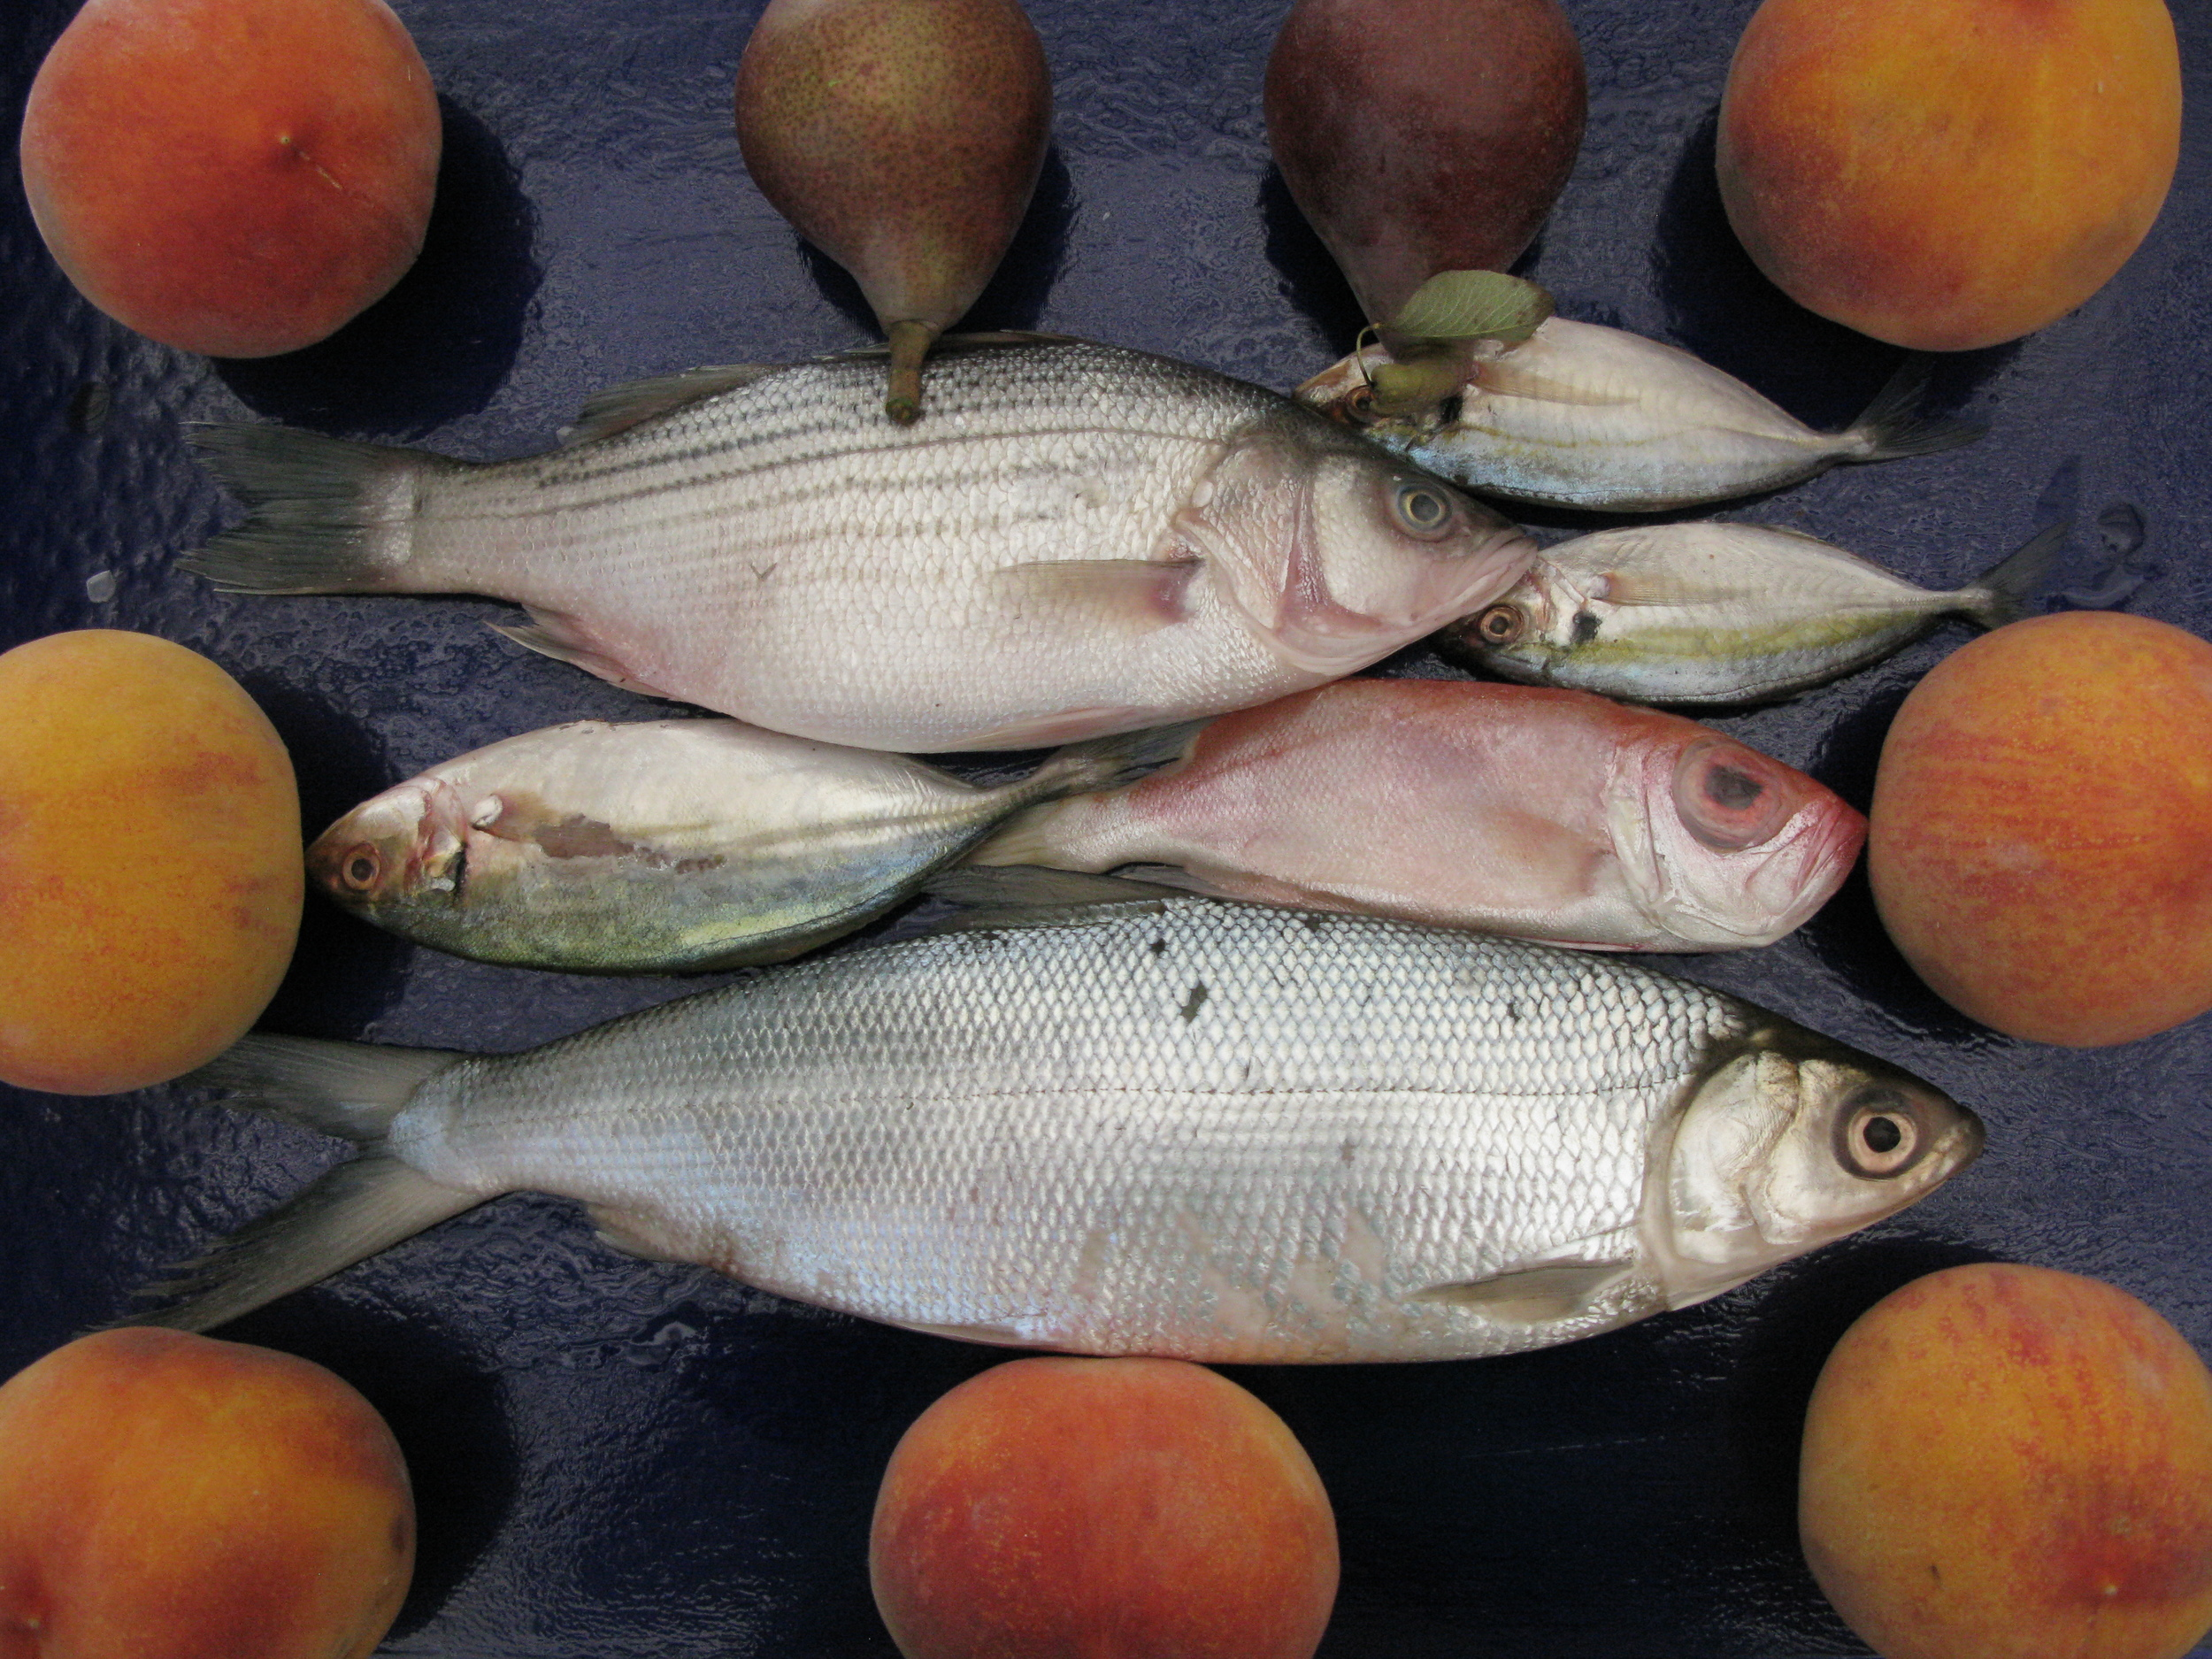 Fish a peaches.